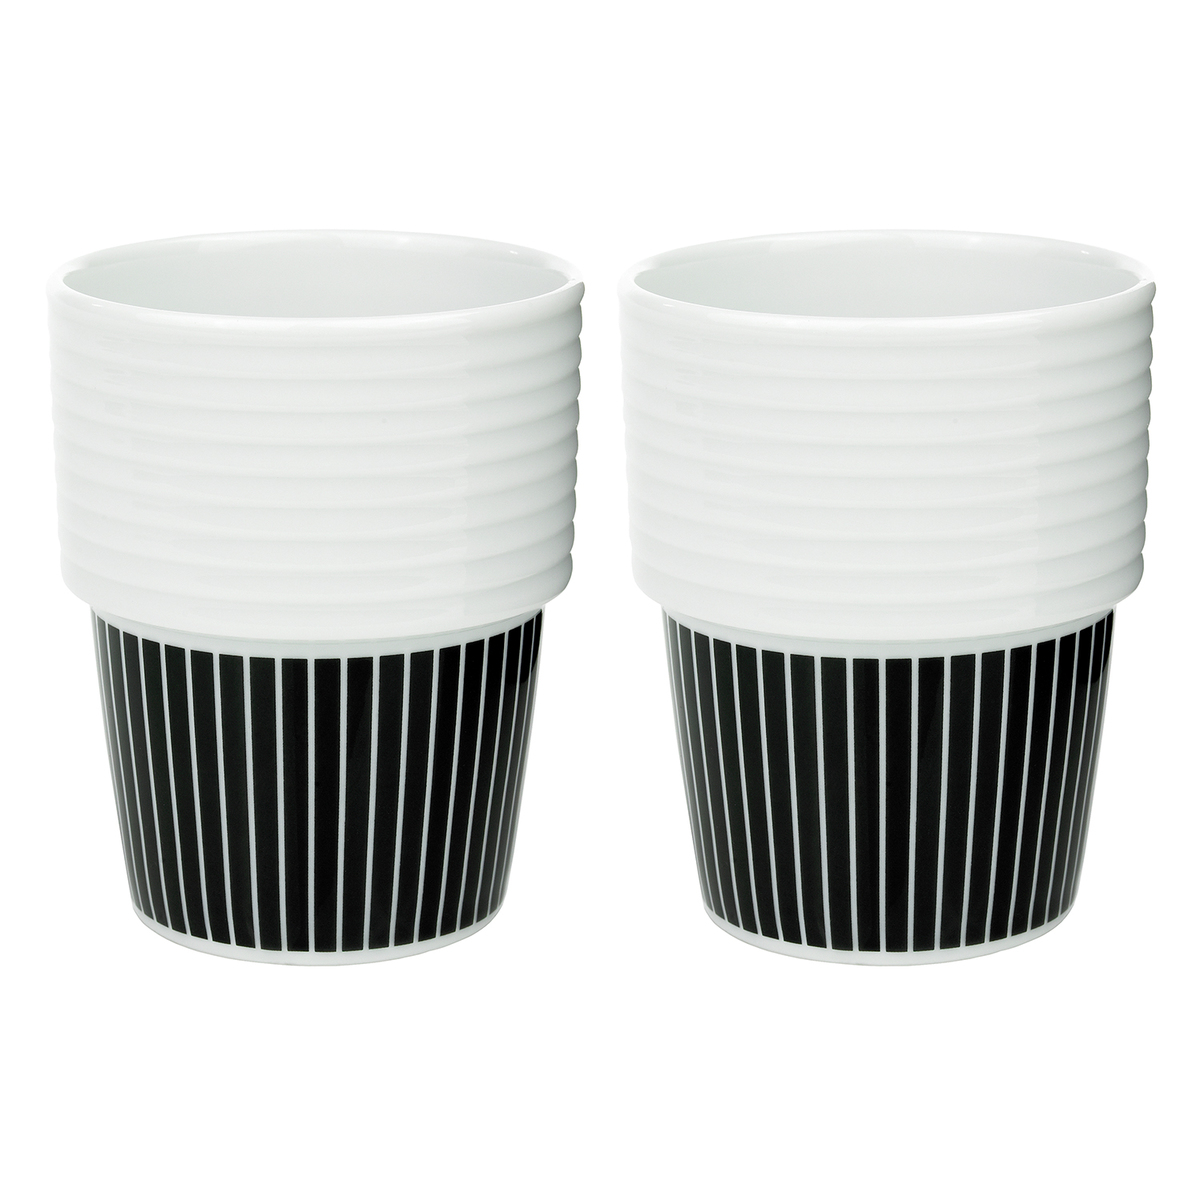 rörstrand filippa k coffee mug 0,31 l, 2 pcs, pinstripes